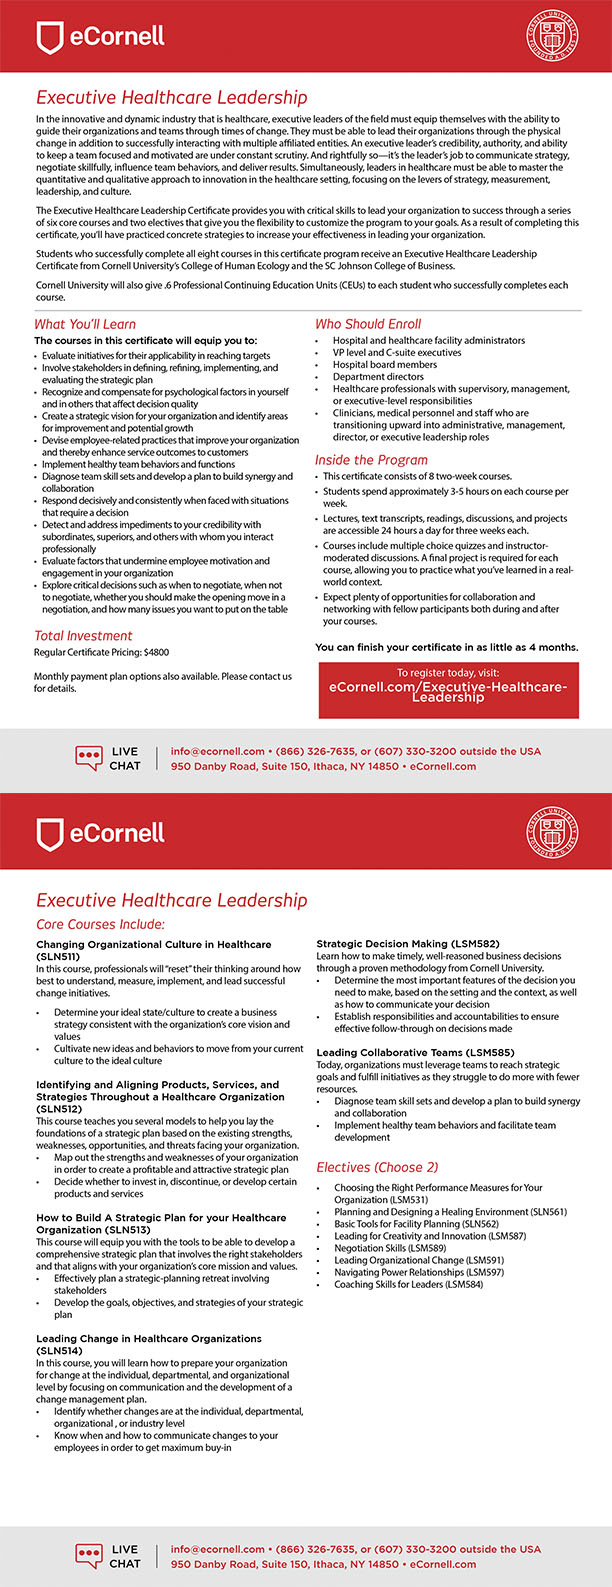 Executive Leadership for Healthcare Professionals Flyer